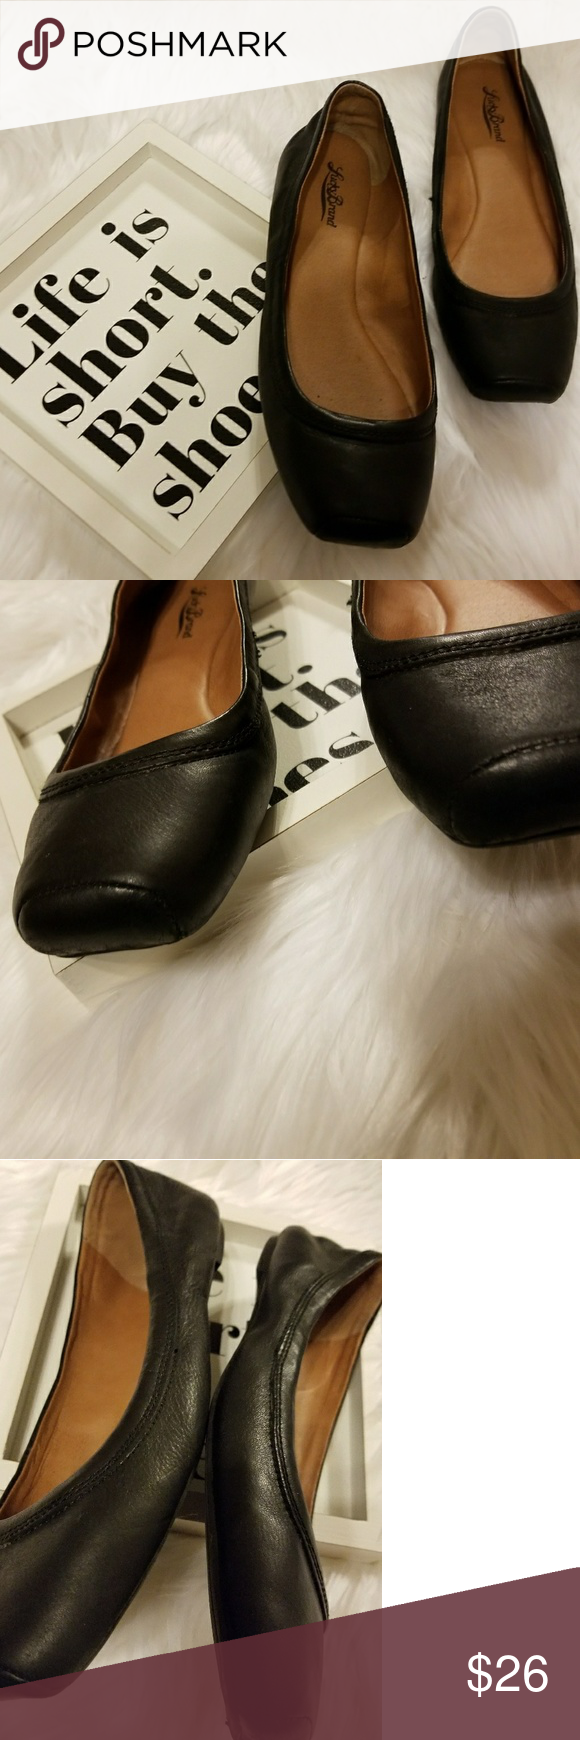 044e25c98 Lucky shoes Black flats. Size 11 B Lucky Brand Shoes Flats & Loafers ...